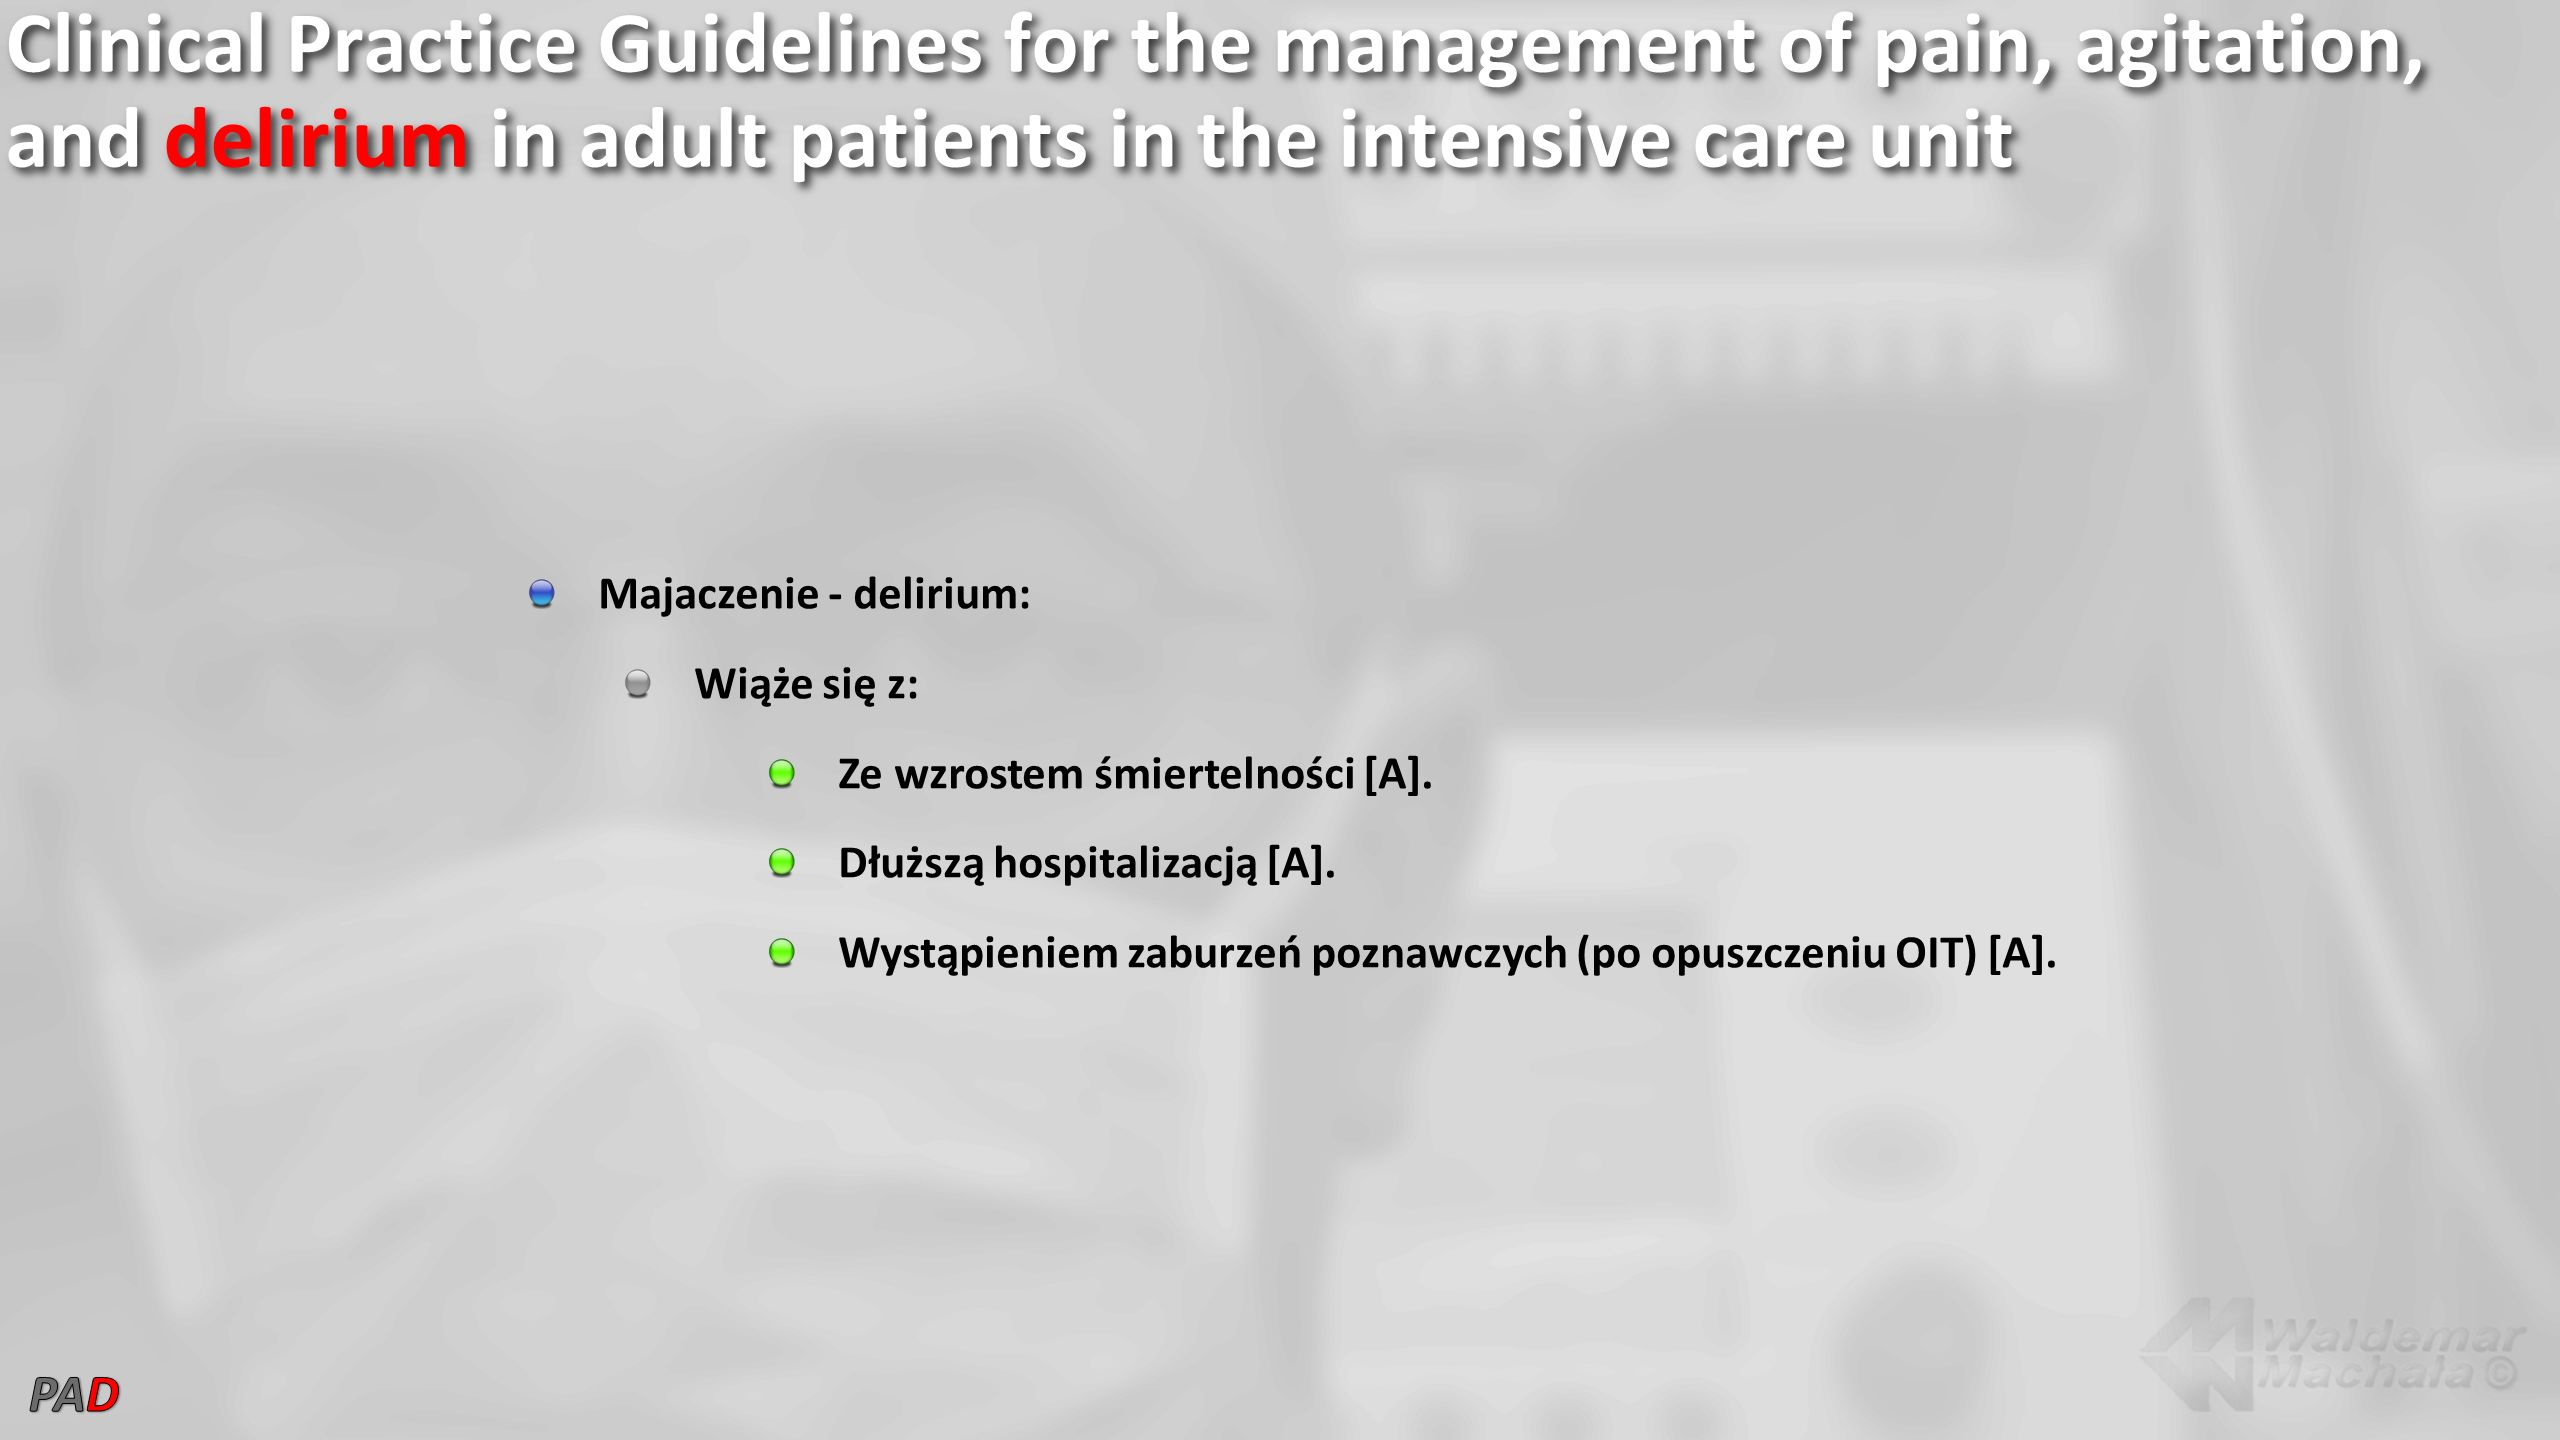 Clinical Practice Guidelines for the management of pain, agitation, and delirium in adult patients in the intensive care unit Majaczenie - delirium: W